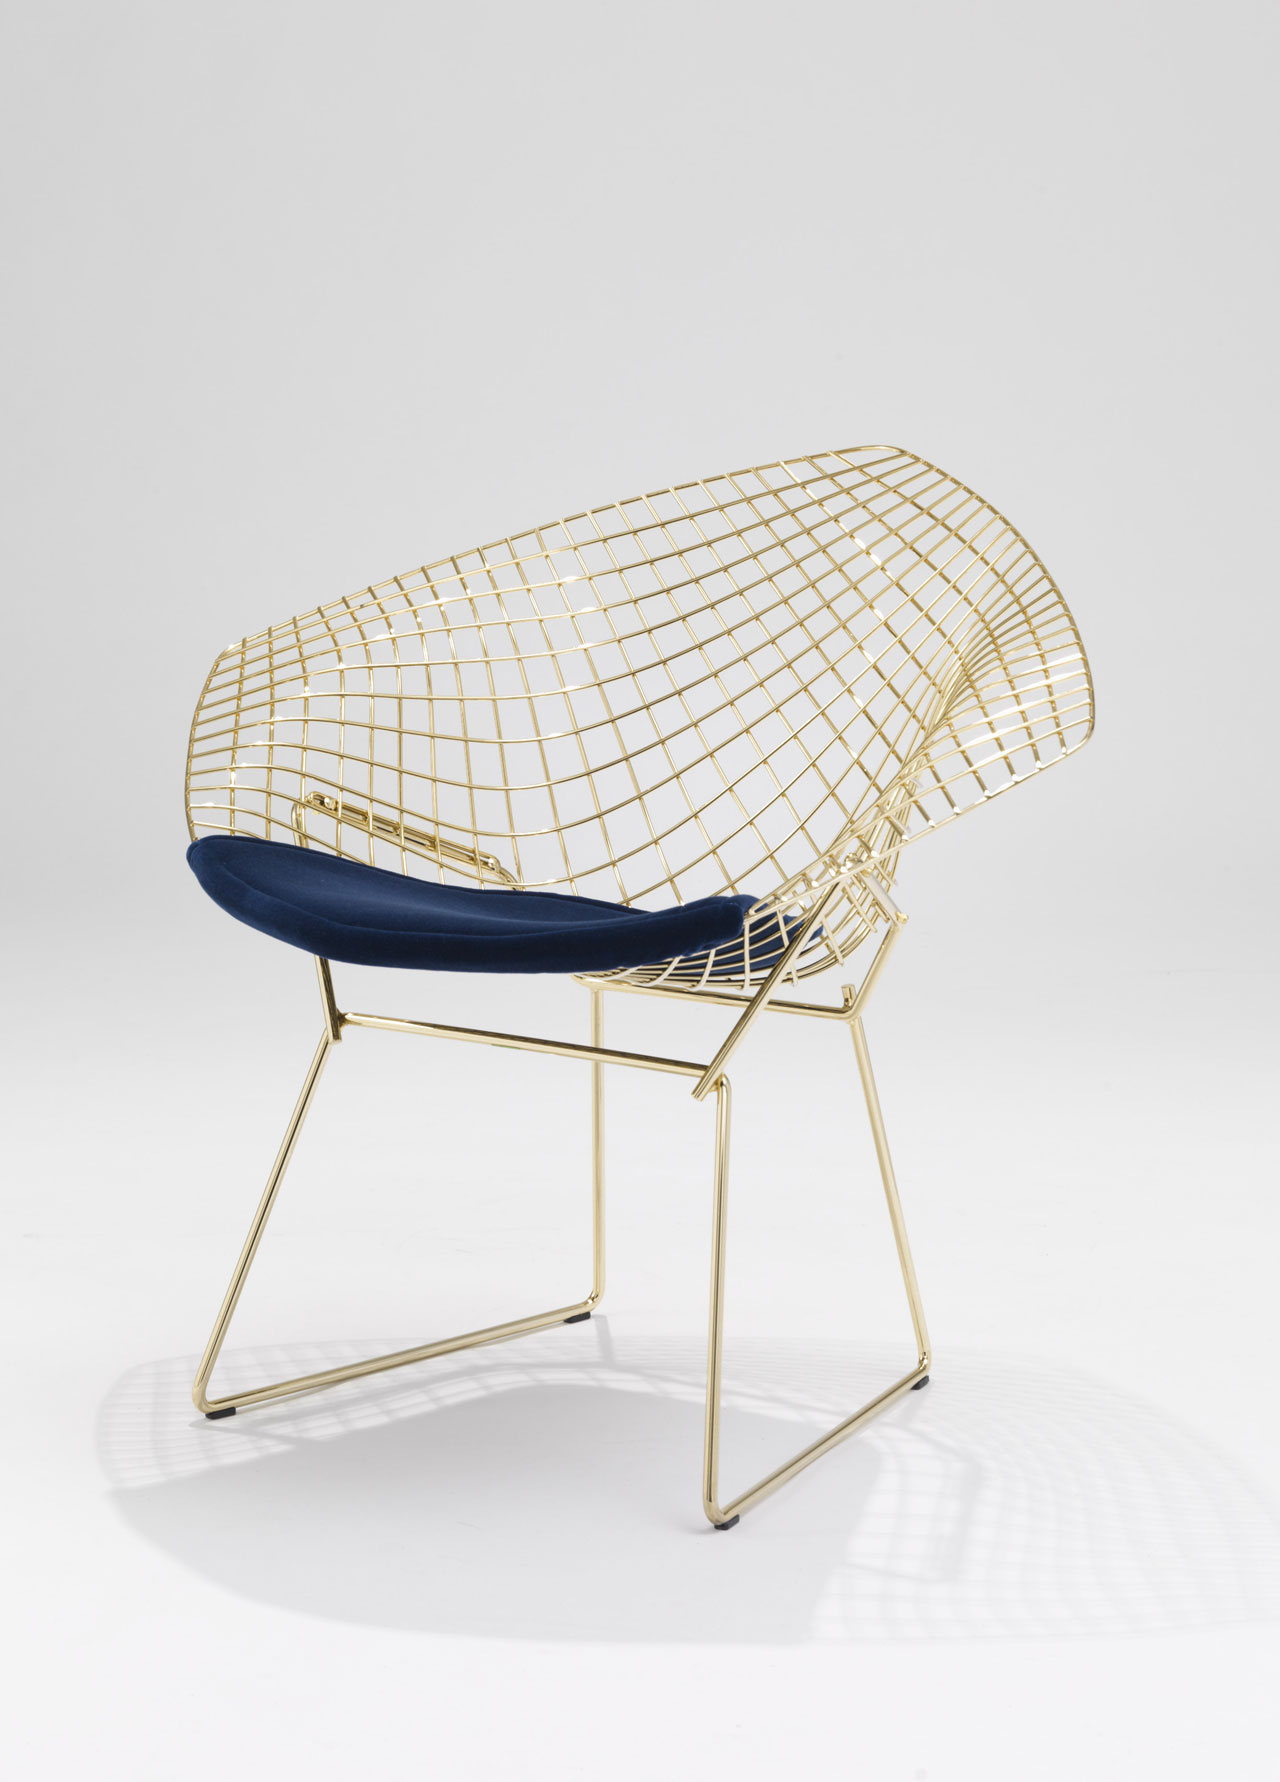 DiamondChair in cowhide and with a new bronze finish by Harry Bertoia for Knoll.Photo by Ezio Prandini.